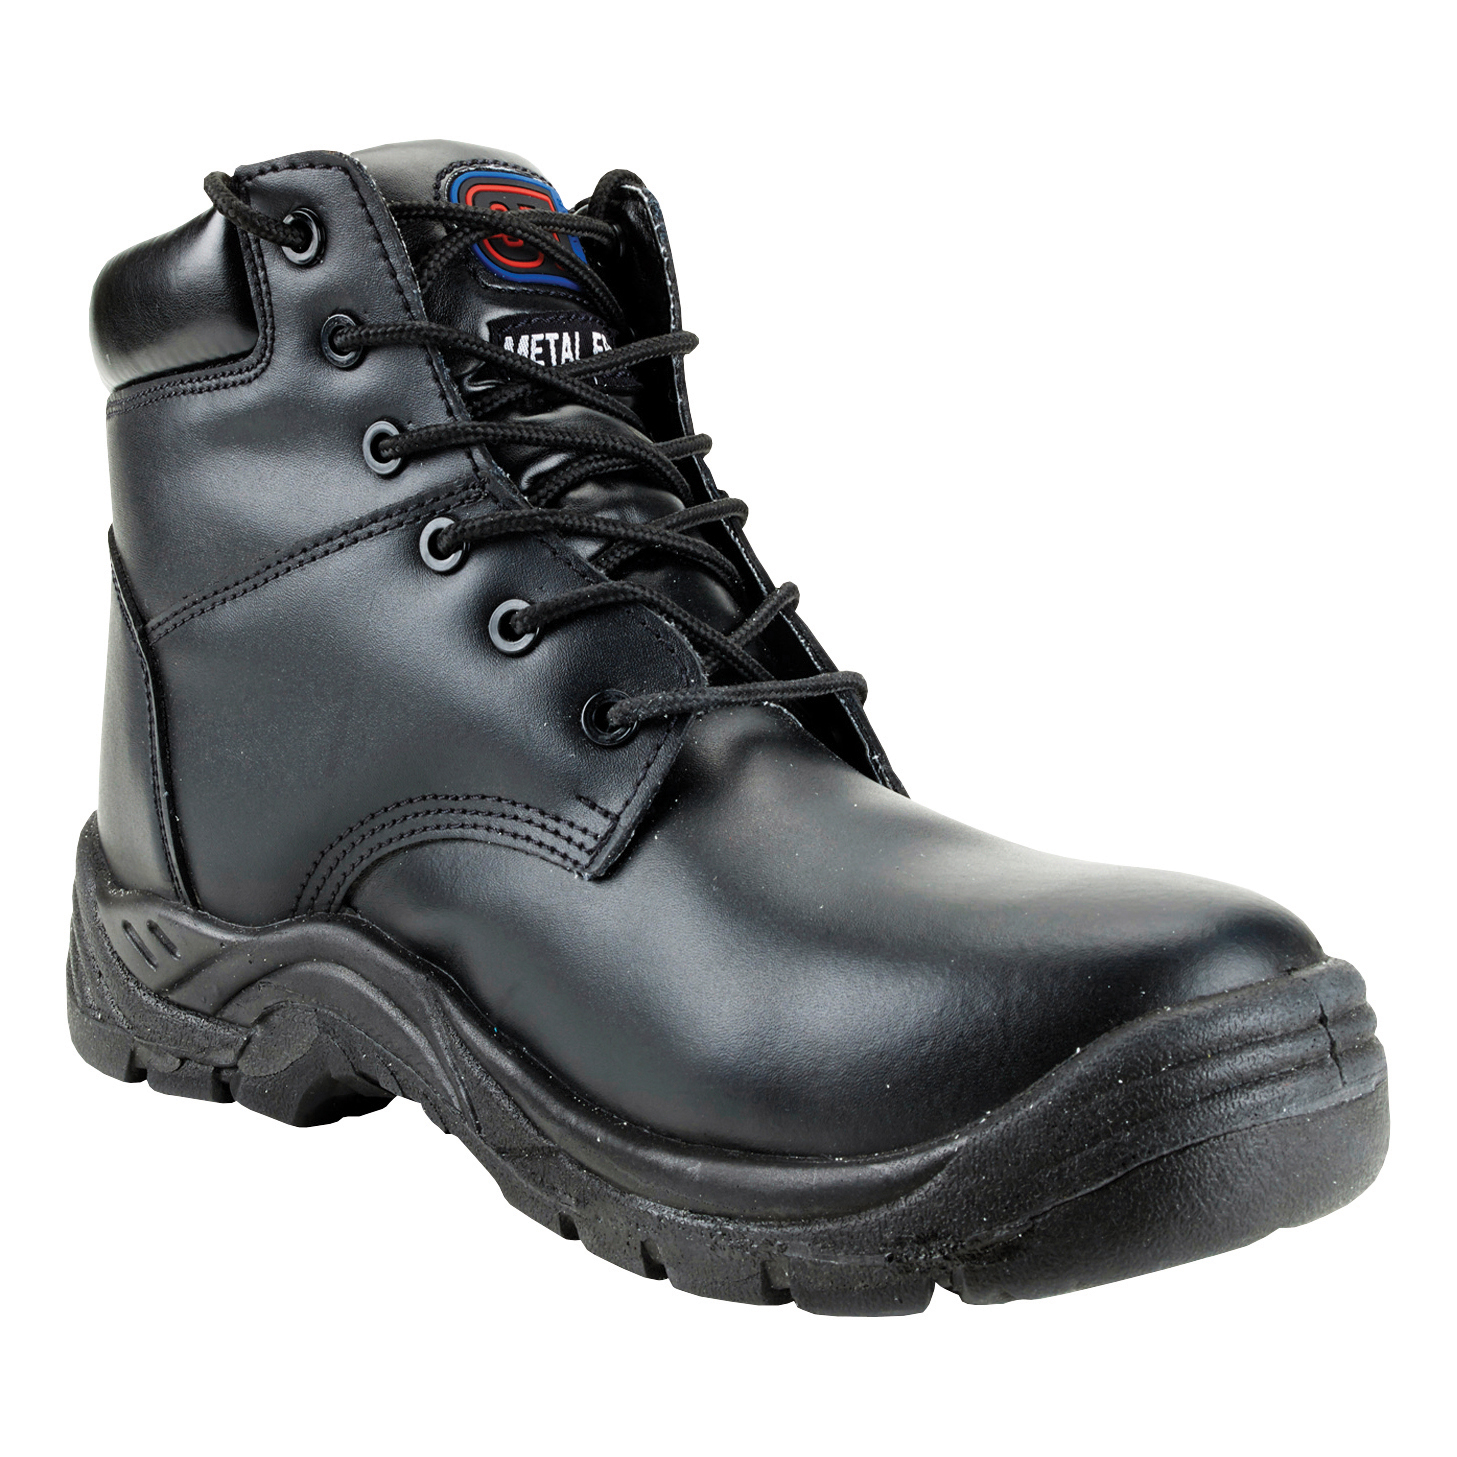 Toe Lite Boot Leather Comp Midsole Safety Toecap Metal Free Size 7 Black Approx 3 Day Leadtime